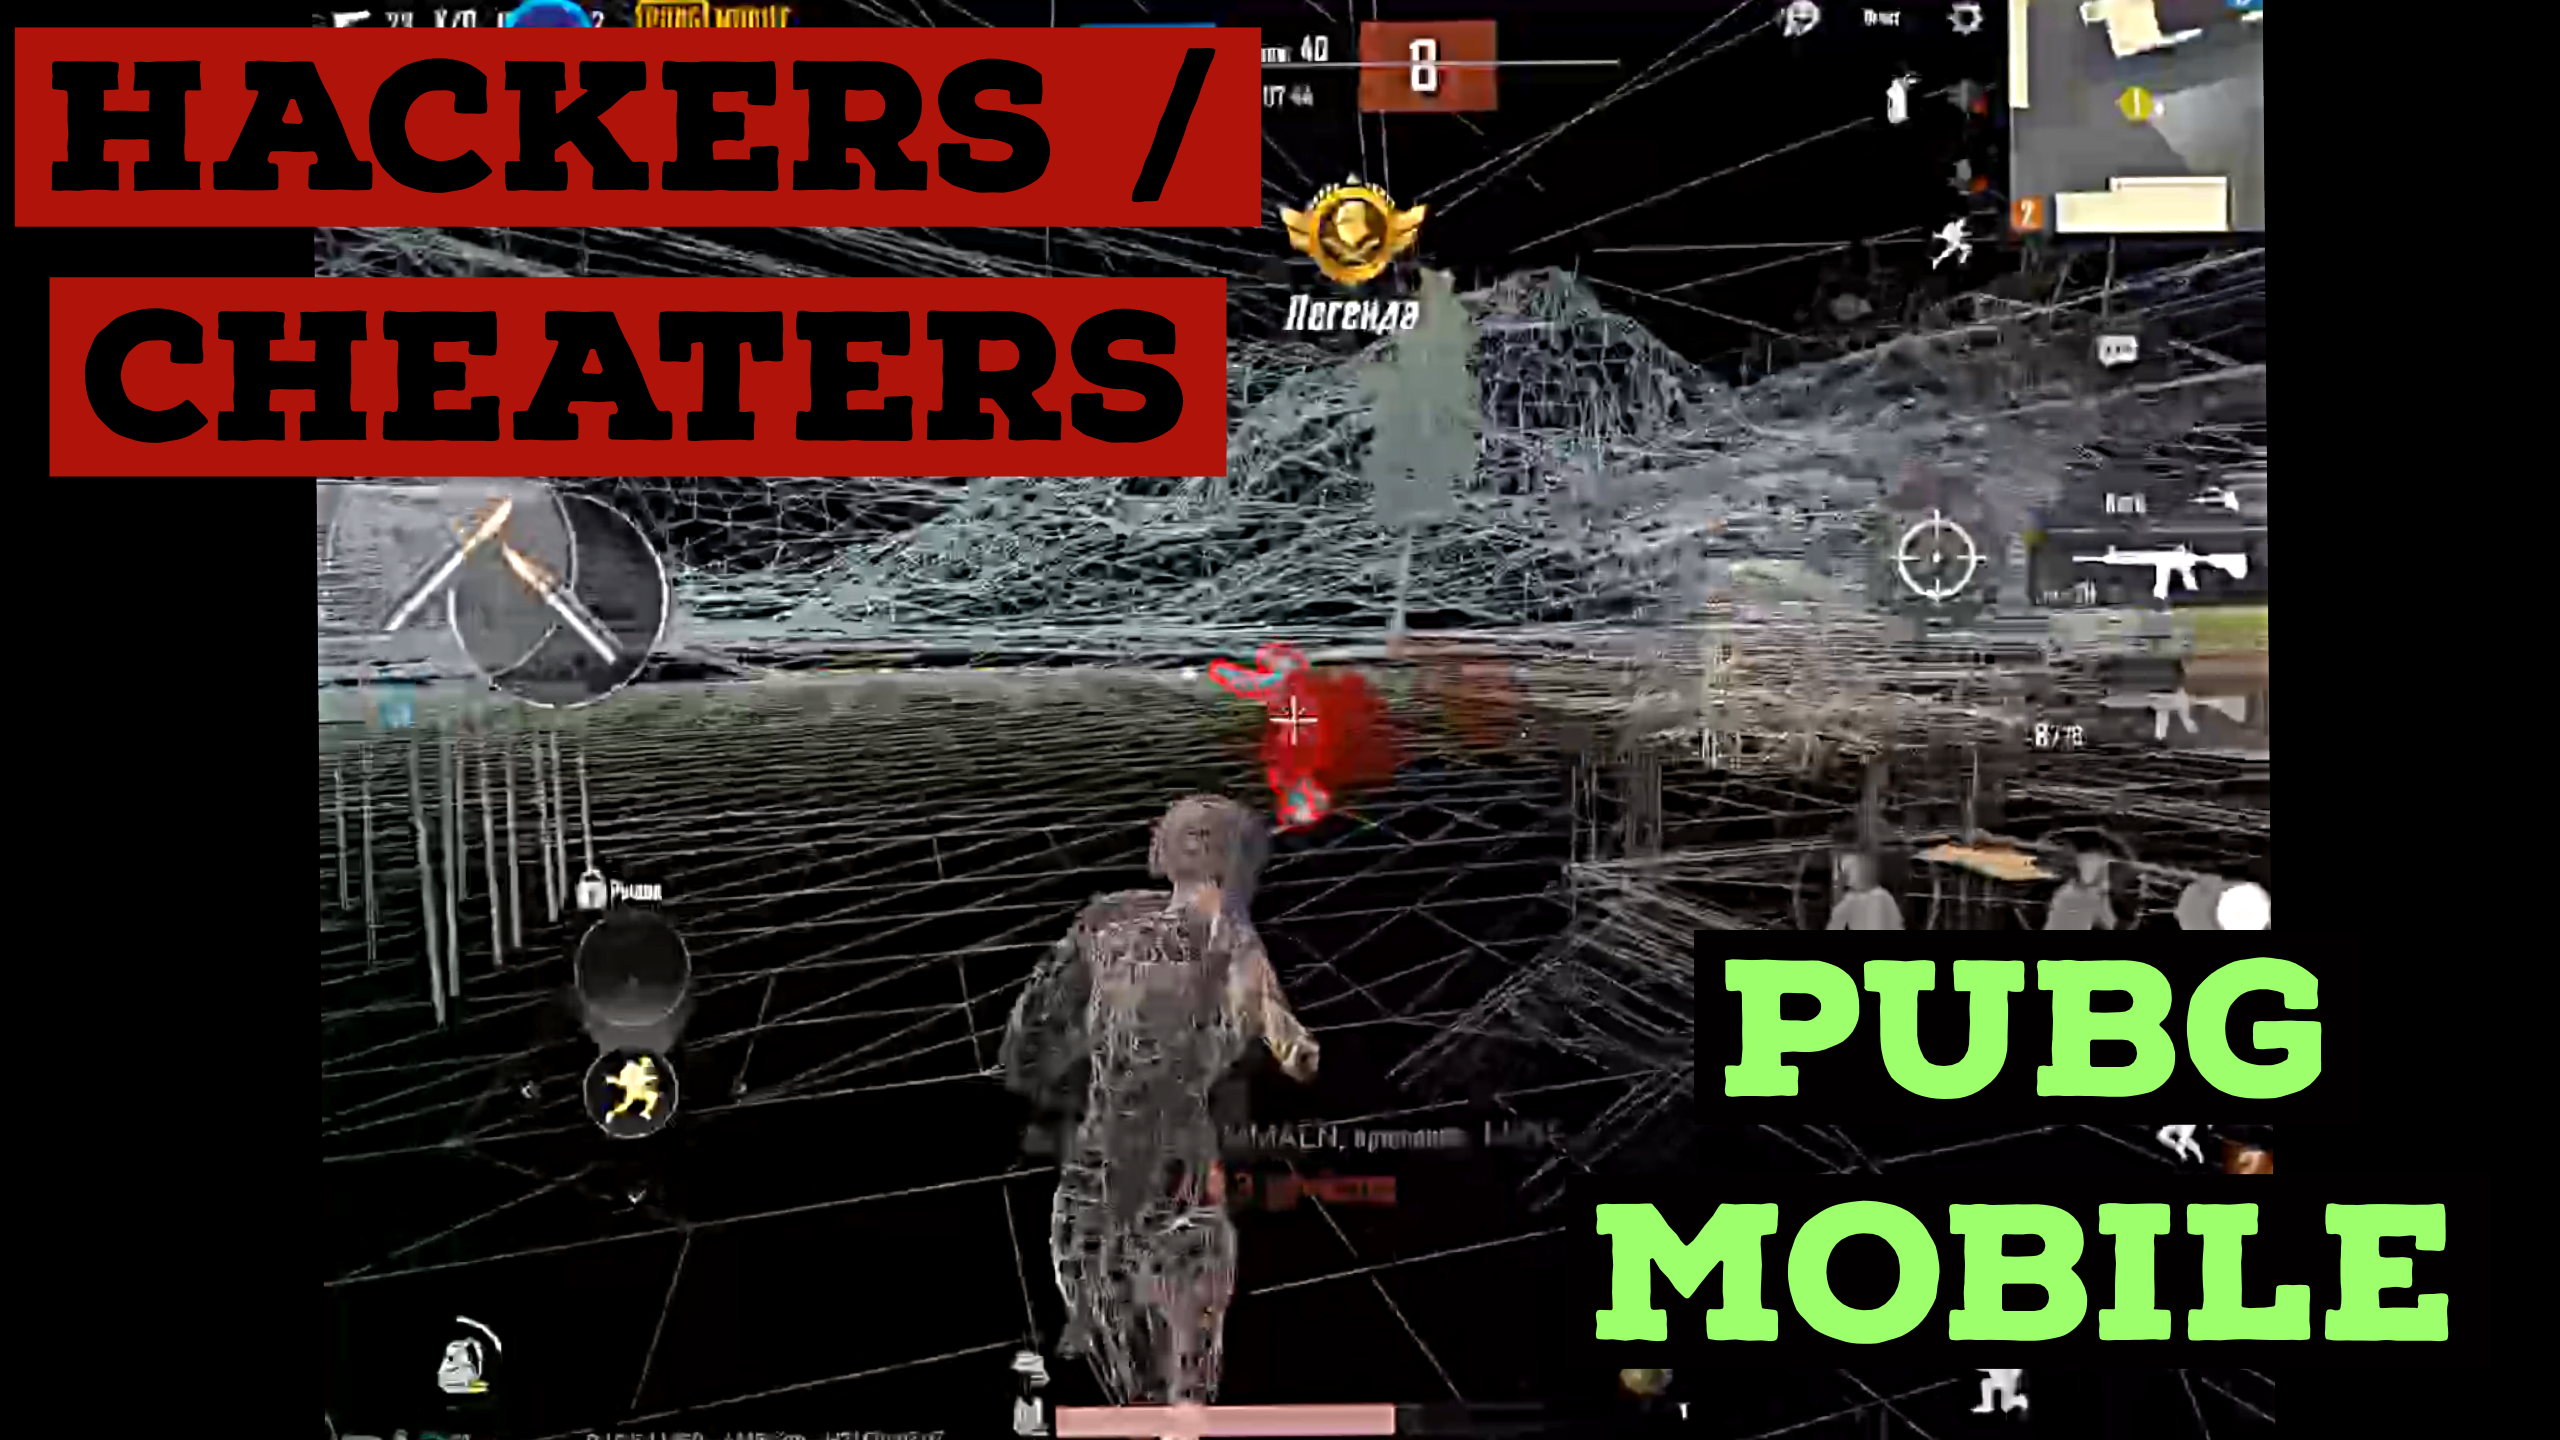 Pubg Mobile Hacks 2020 Version 0 17 Gaming Tips The Game Is Over Cheat Engine